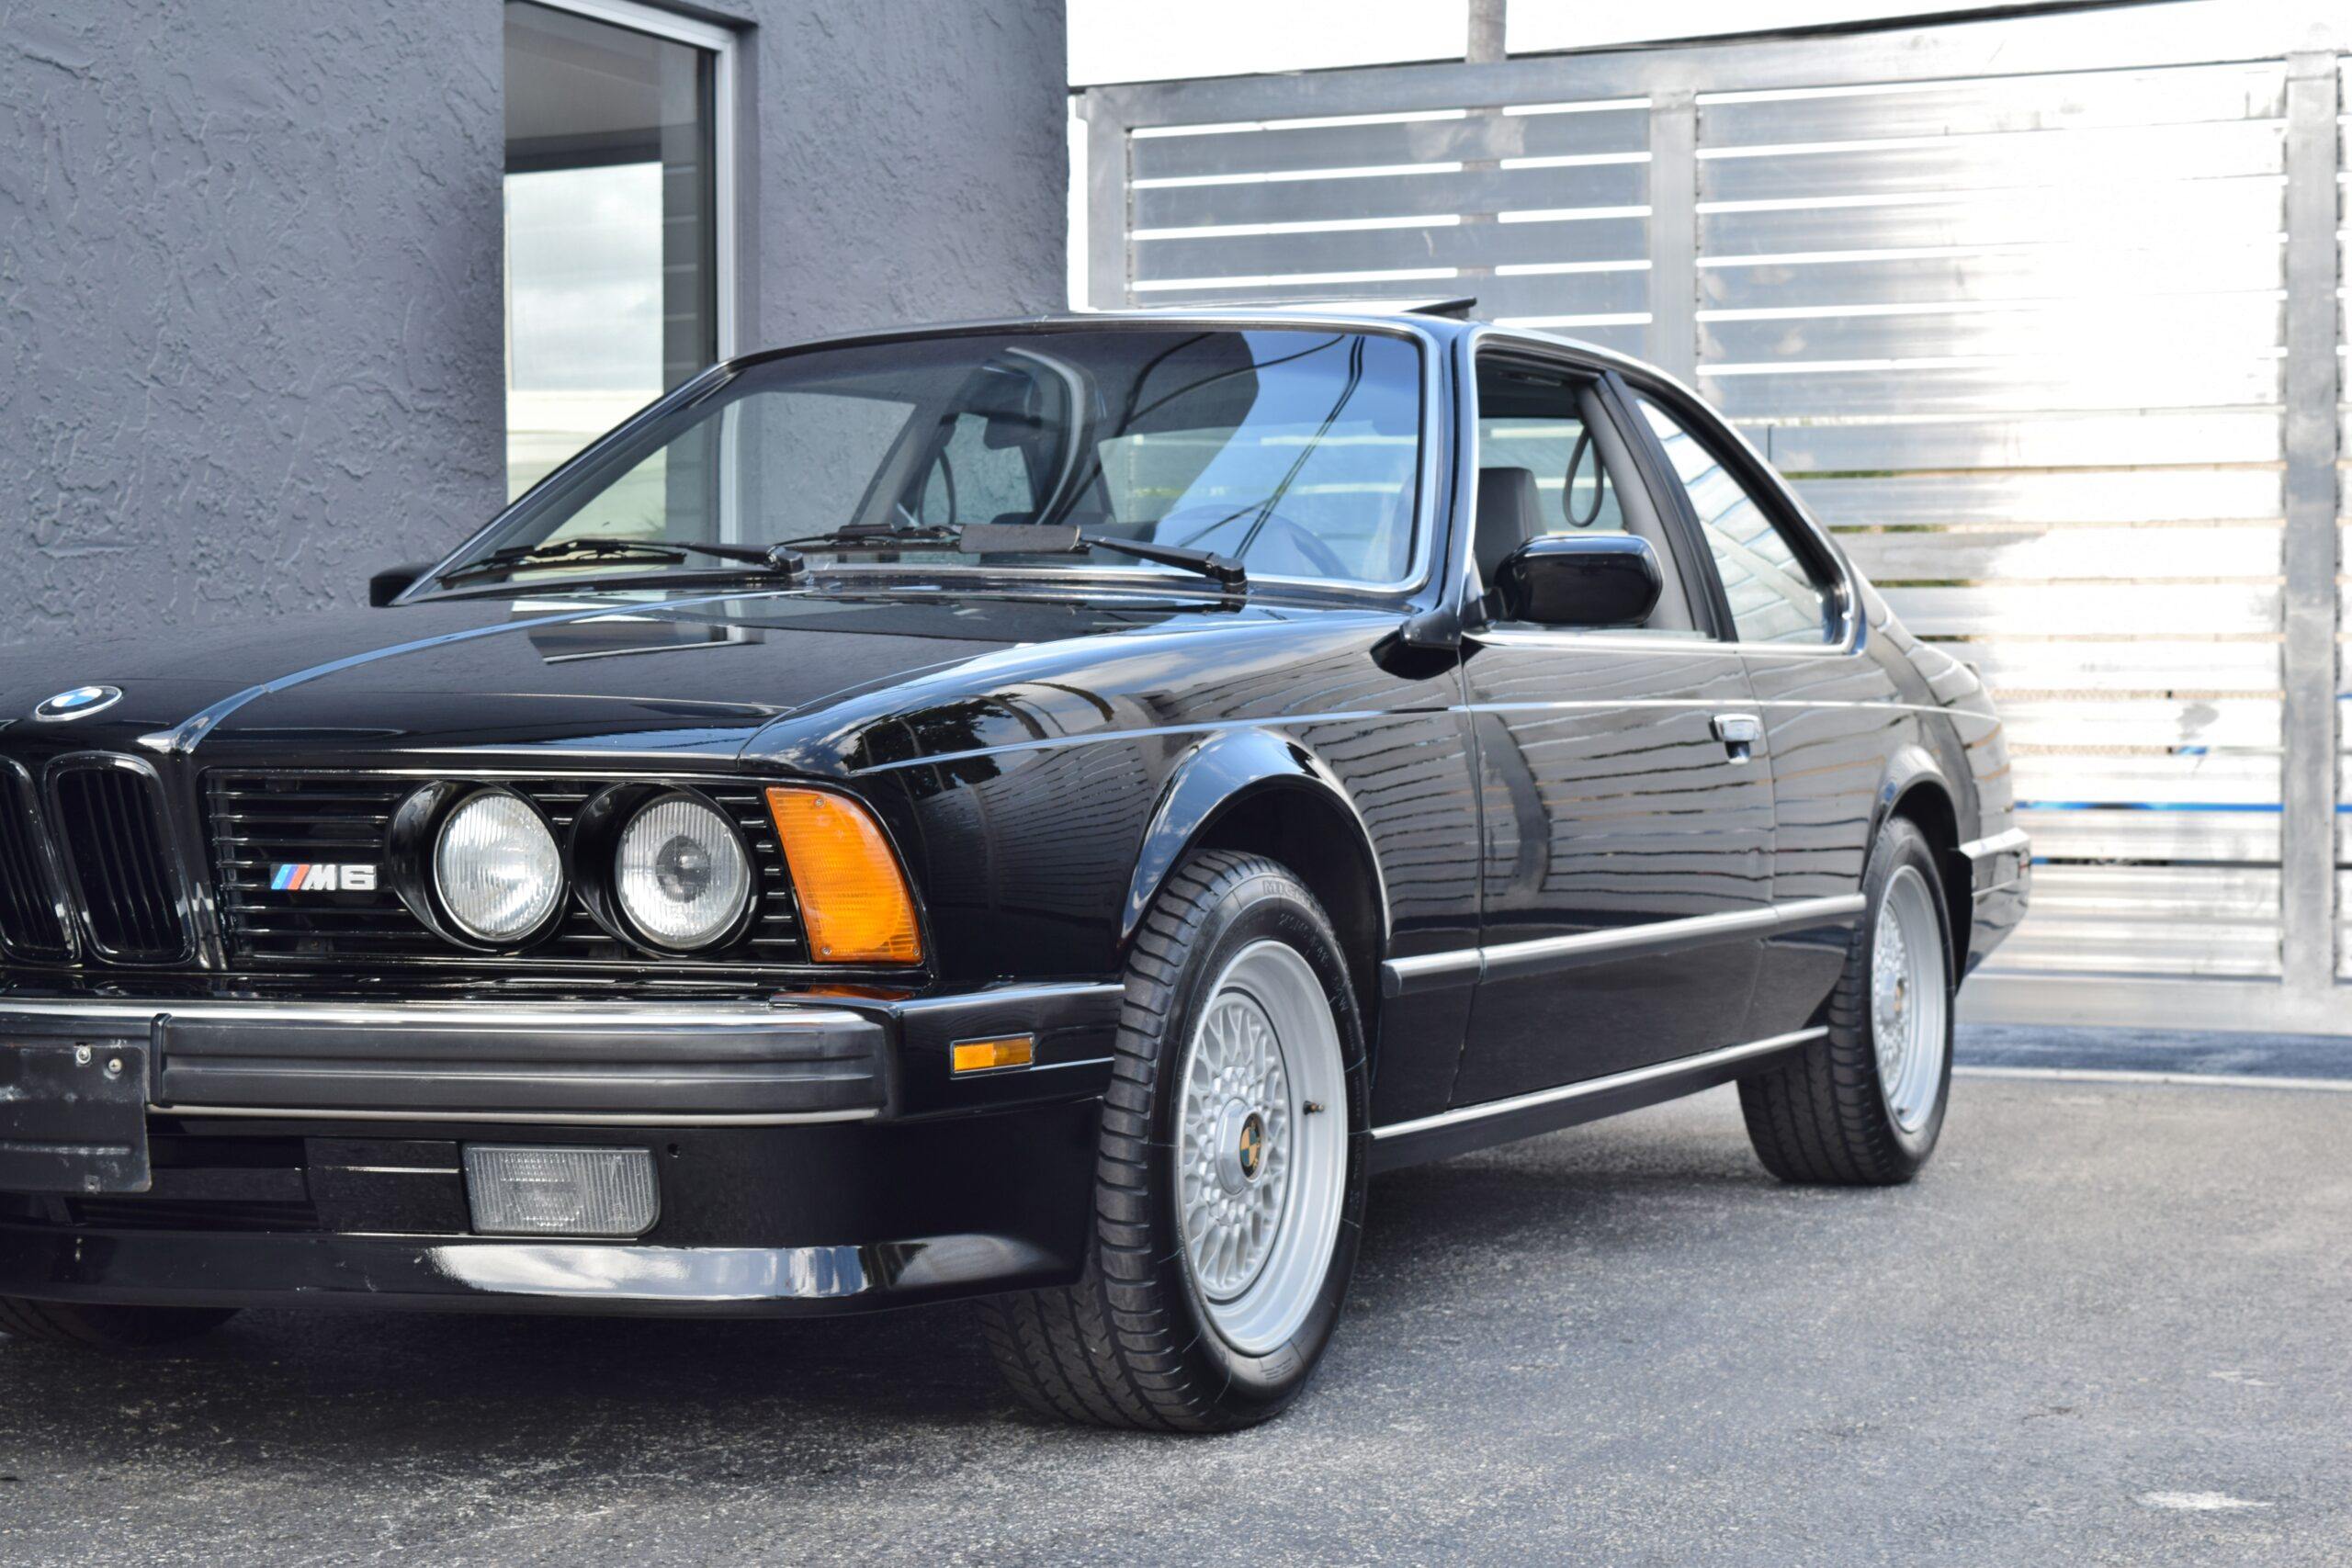 1988 BMW M6 E24 Excellent condition inside & out Service Records From New-Recent Full Service-